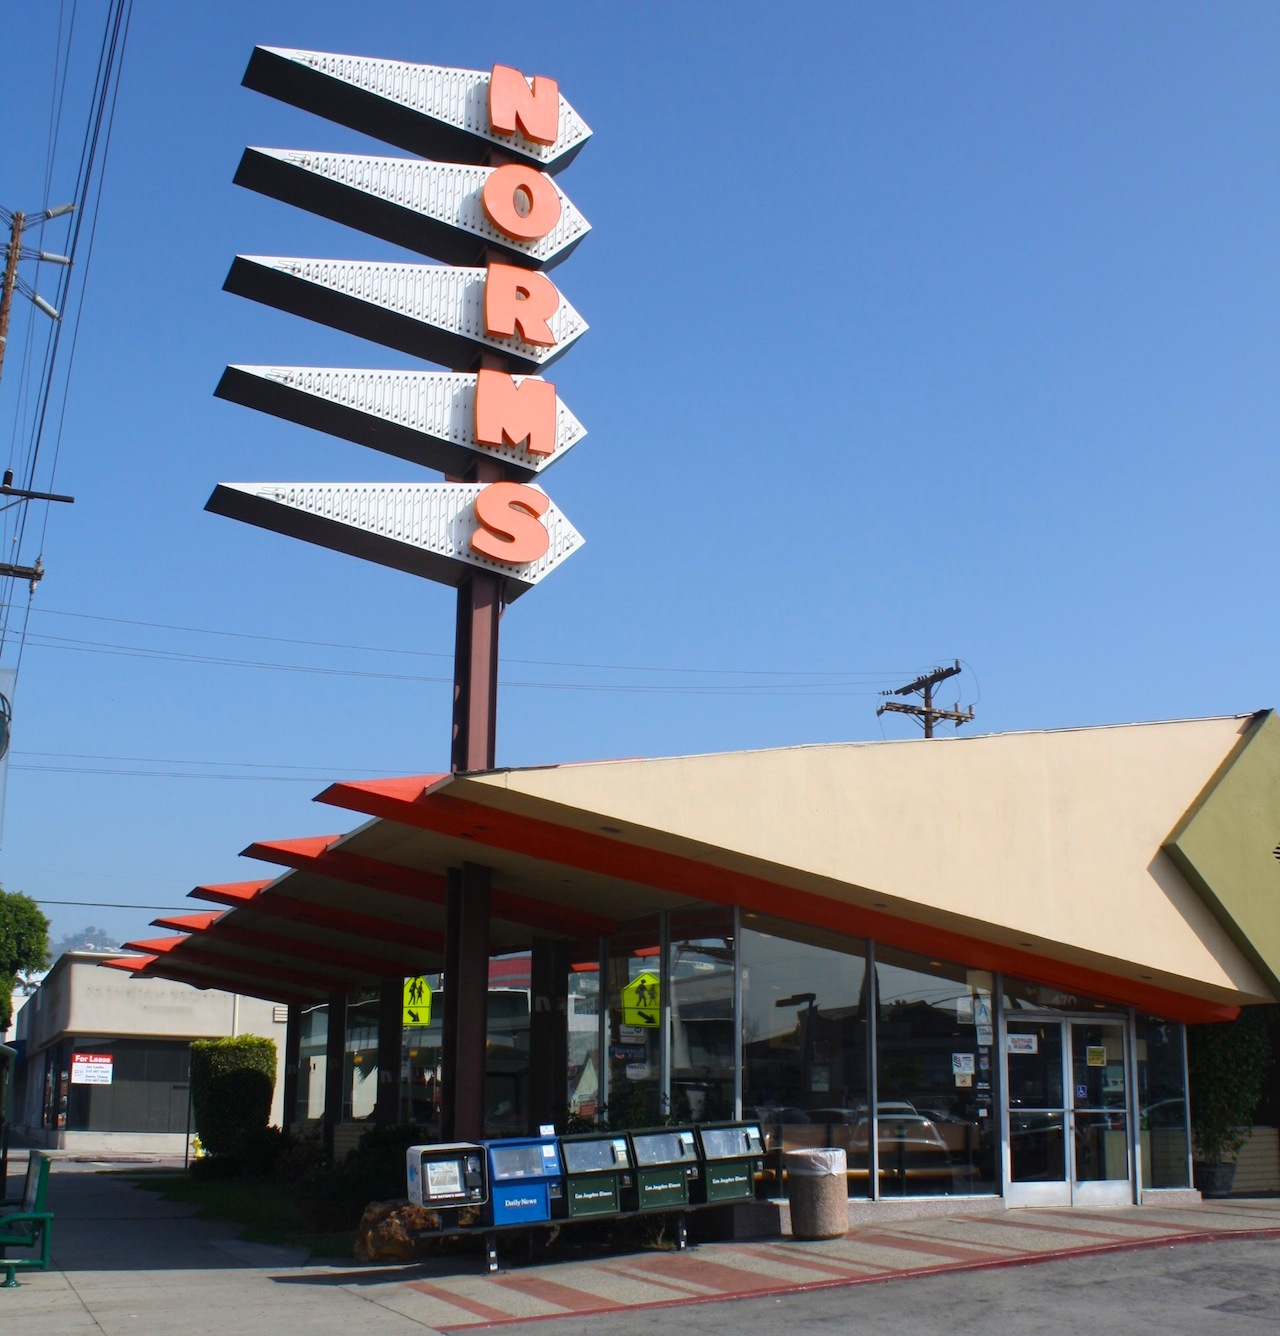 Norms La Cienega (all photos by the author for Hyperallergic)